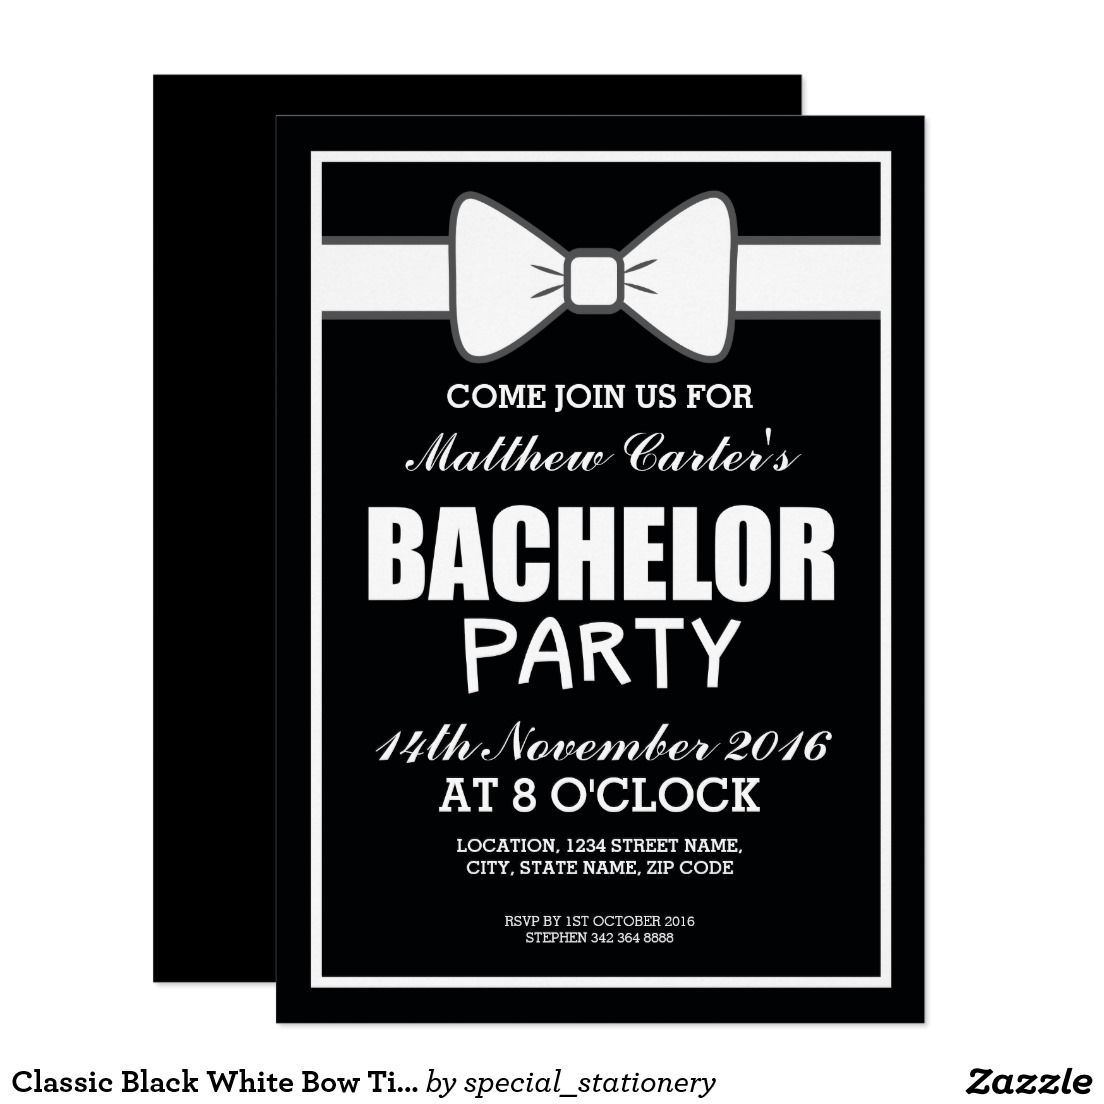 Classic black white bow tie bachelor party card bachelor party bachelor party invitations monicamarmolfo Choice Image